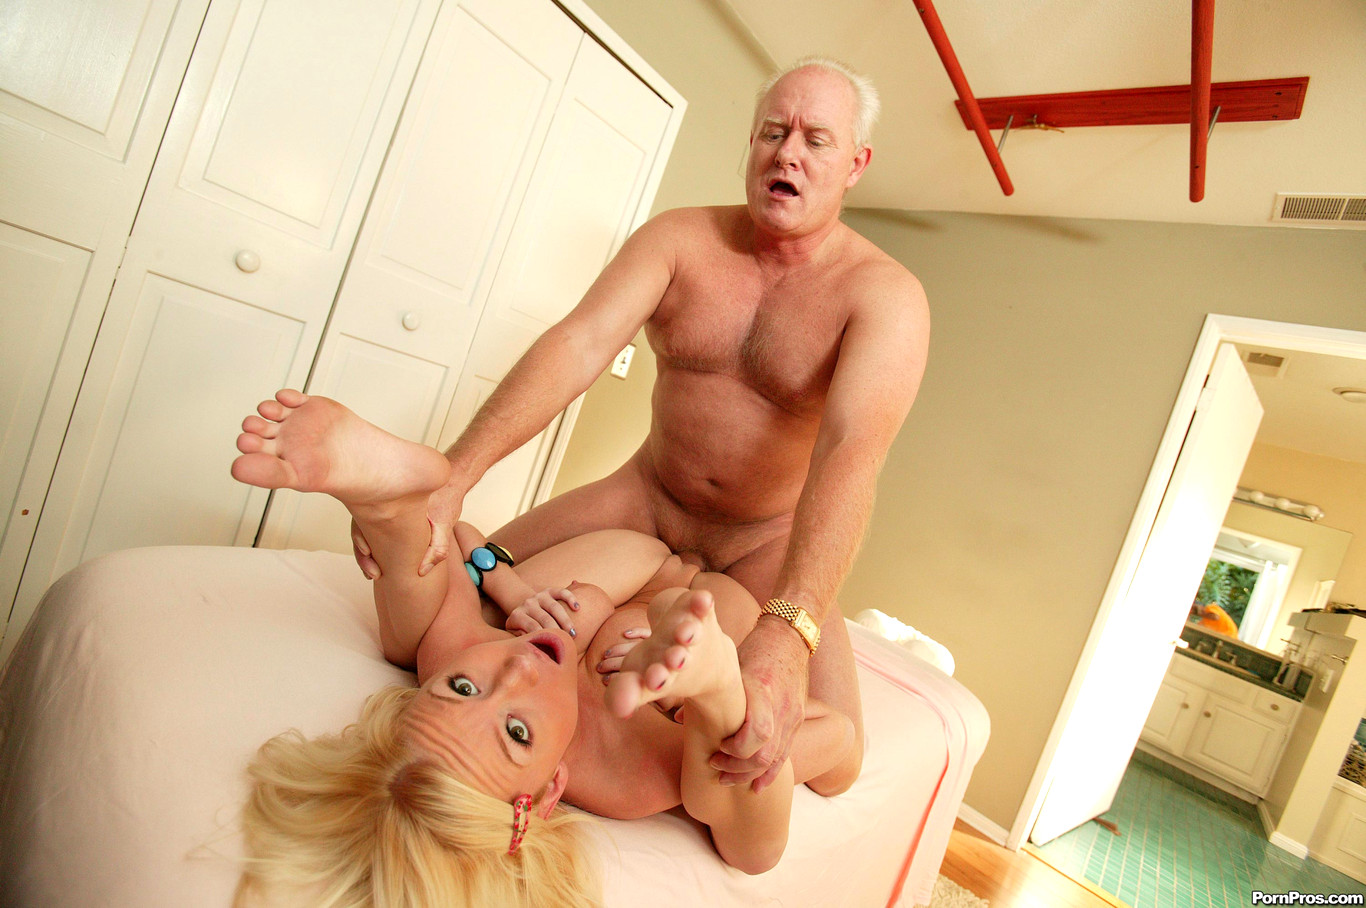 dirty-xxx-sex-in-large-old-man-gallery